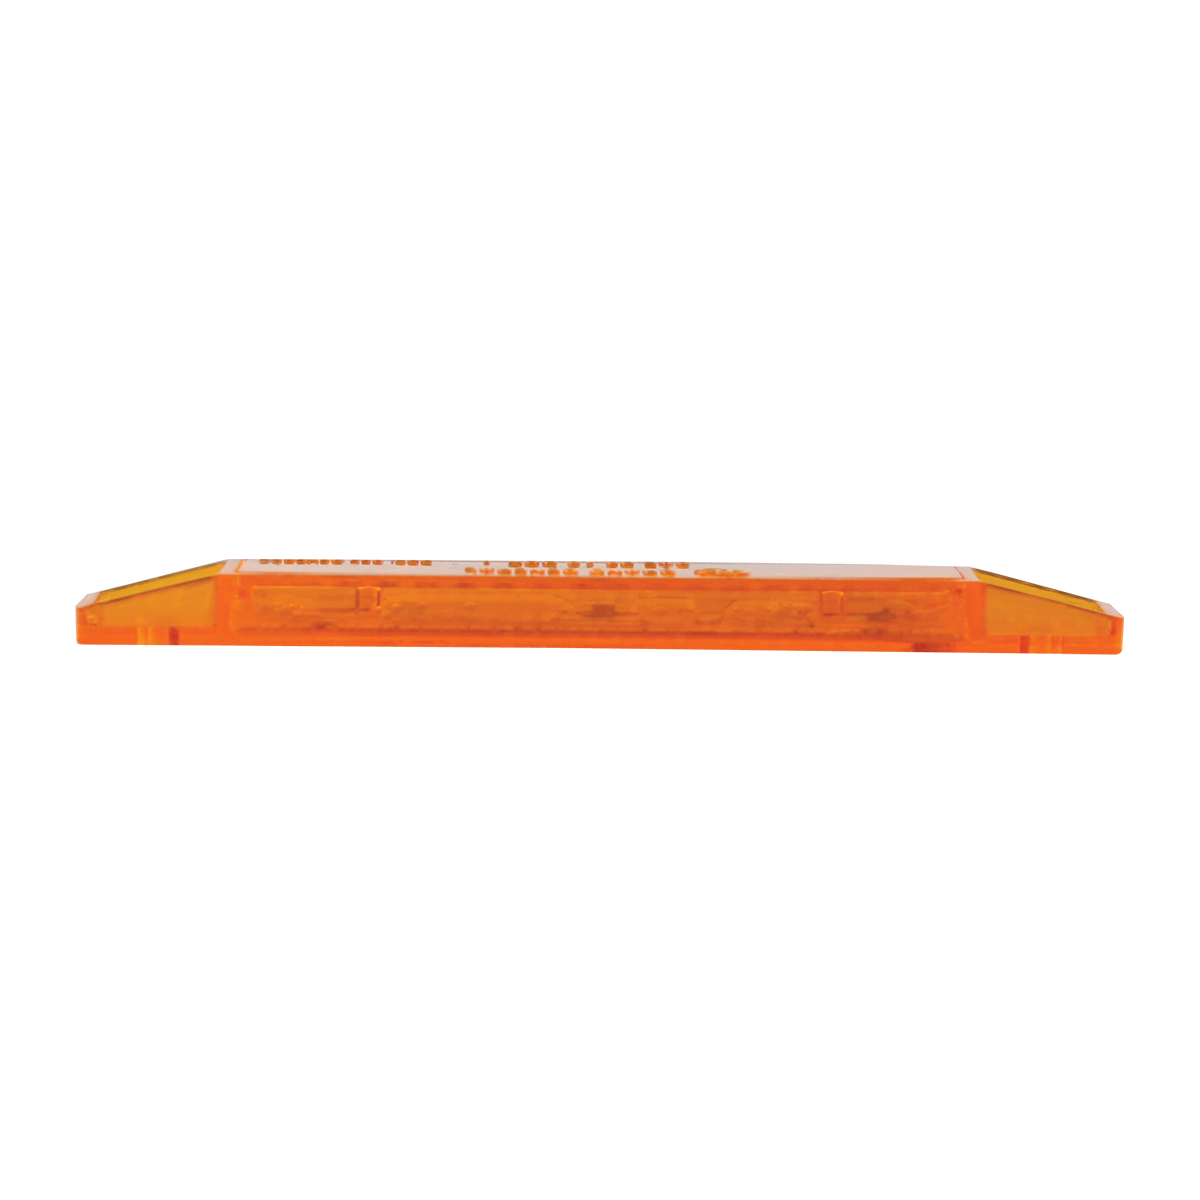 "76280 3.5"" Ultra Thin LED Marker Light"